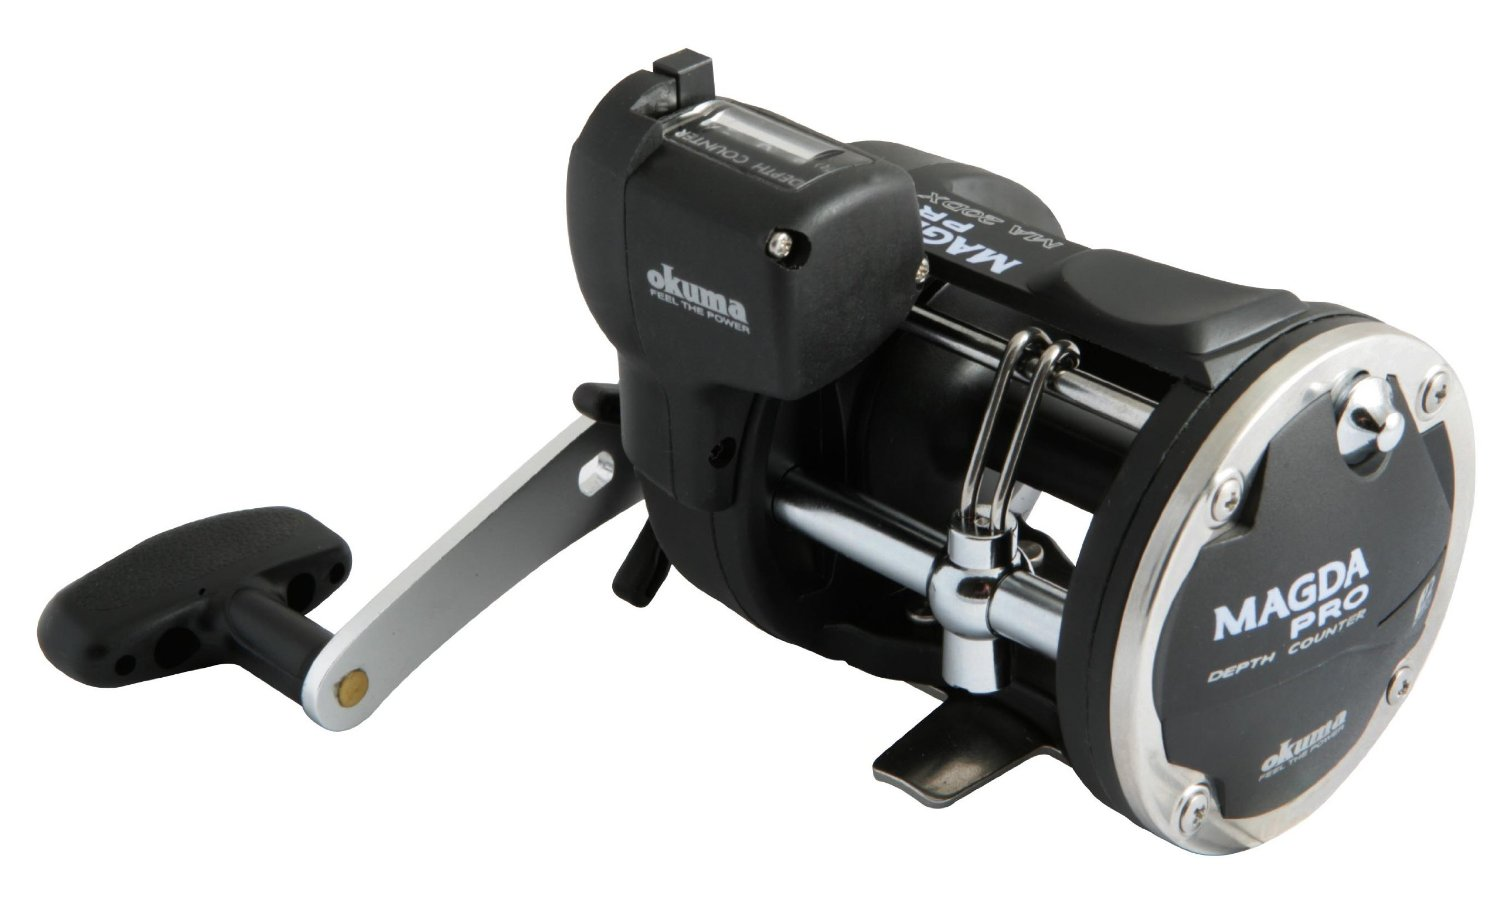 Okuma Magda Pro Line Counter Levelwind Trolling Reel Review